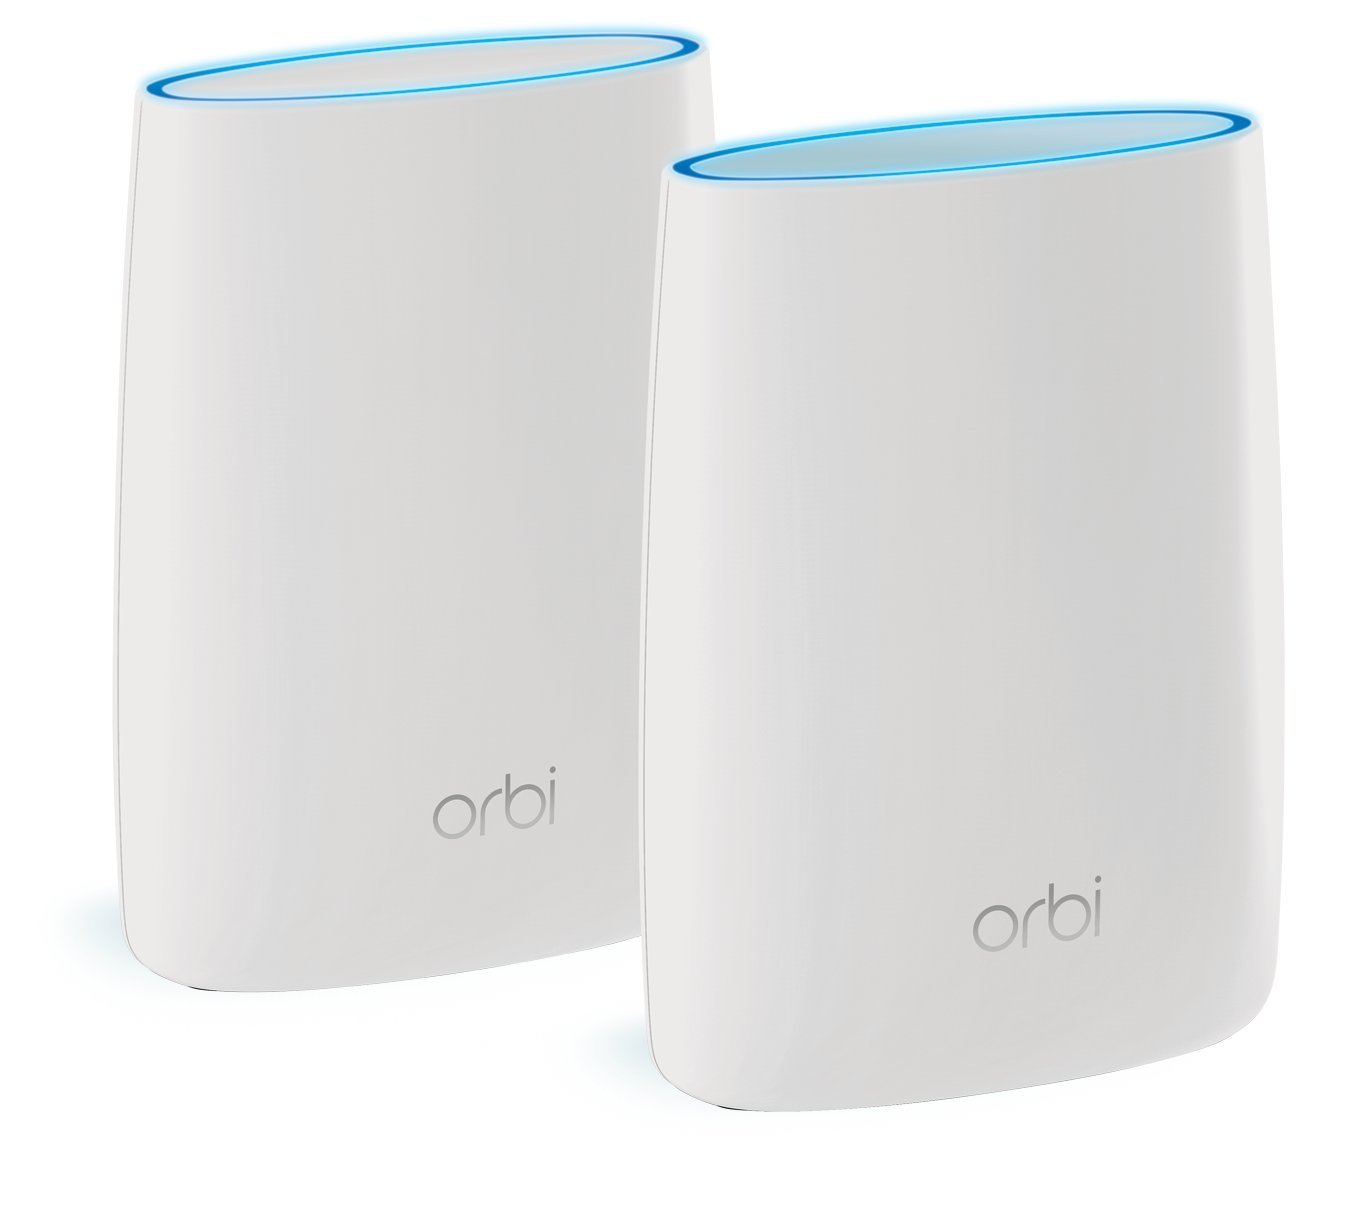 Review: Netgear Orbi AC3000 Tri-band Wifi System (RBK50)